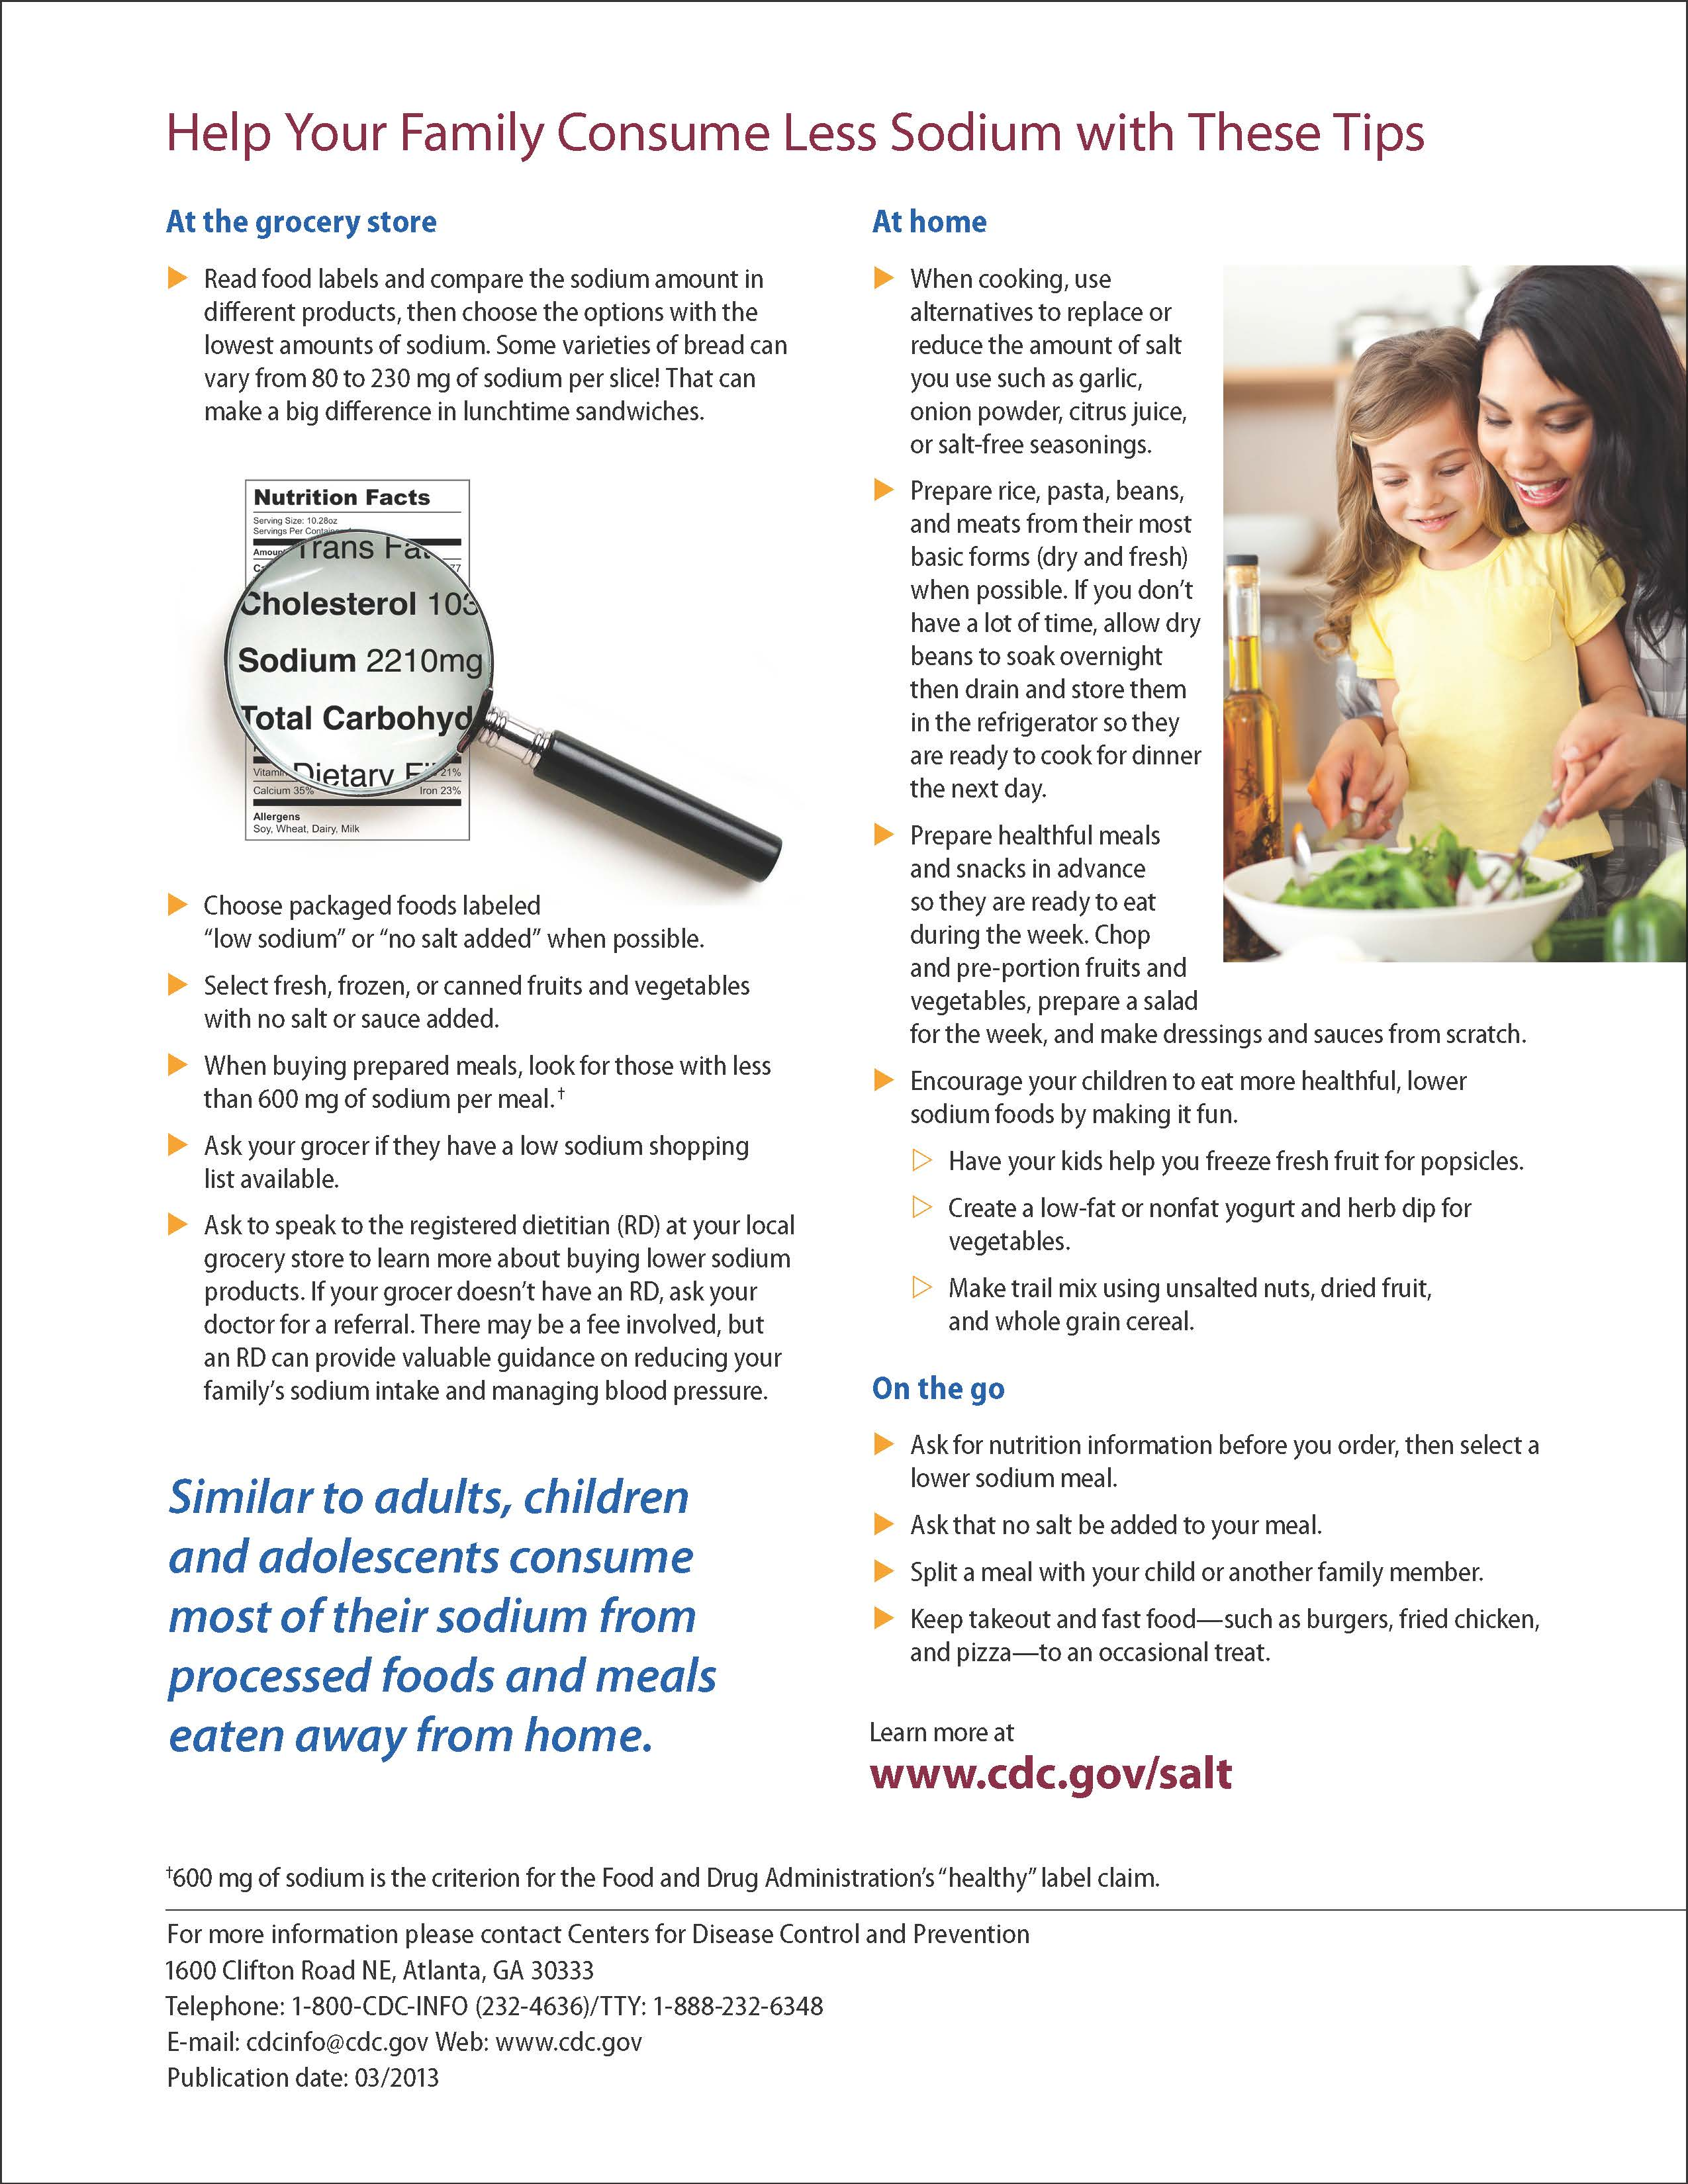 How Much Salt Should My Child Be Eating? Learn more about daily sodium intake